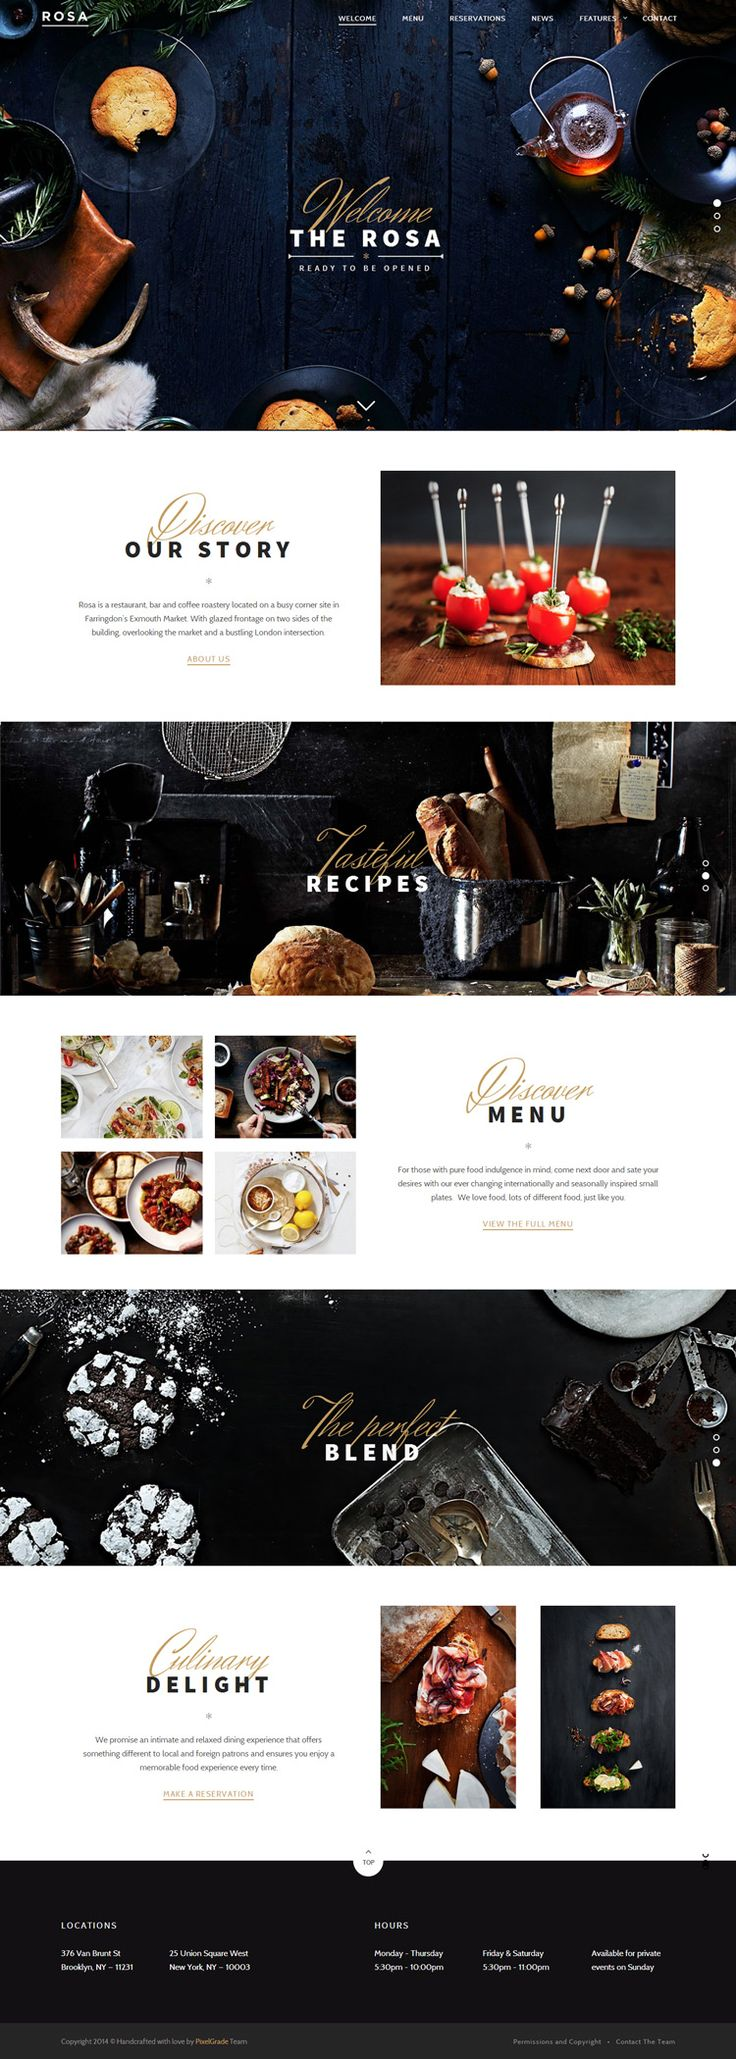 Restaurant WordPress Theme Responsive with Parallax Scrolling, one page layout, open table reservation system